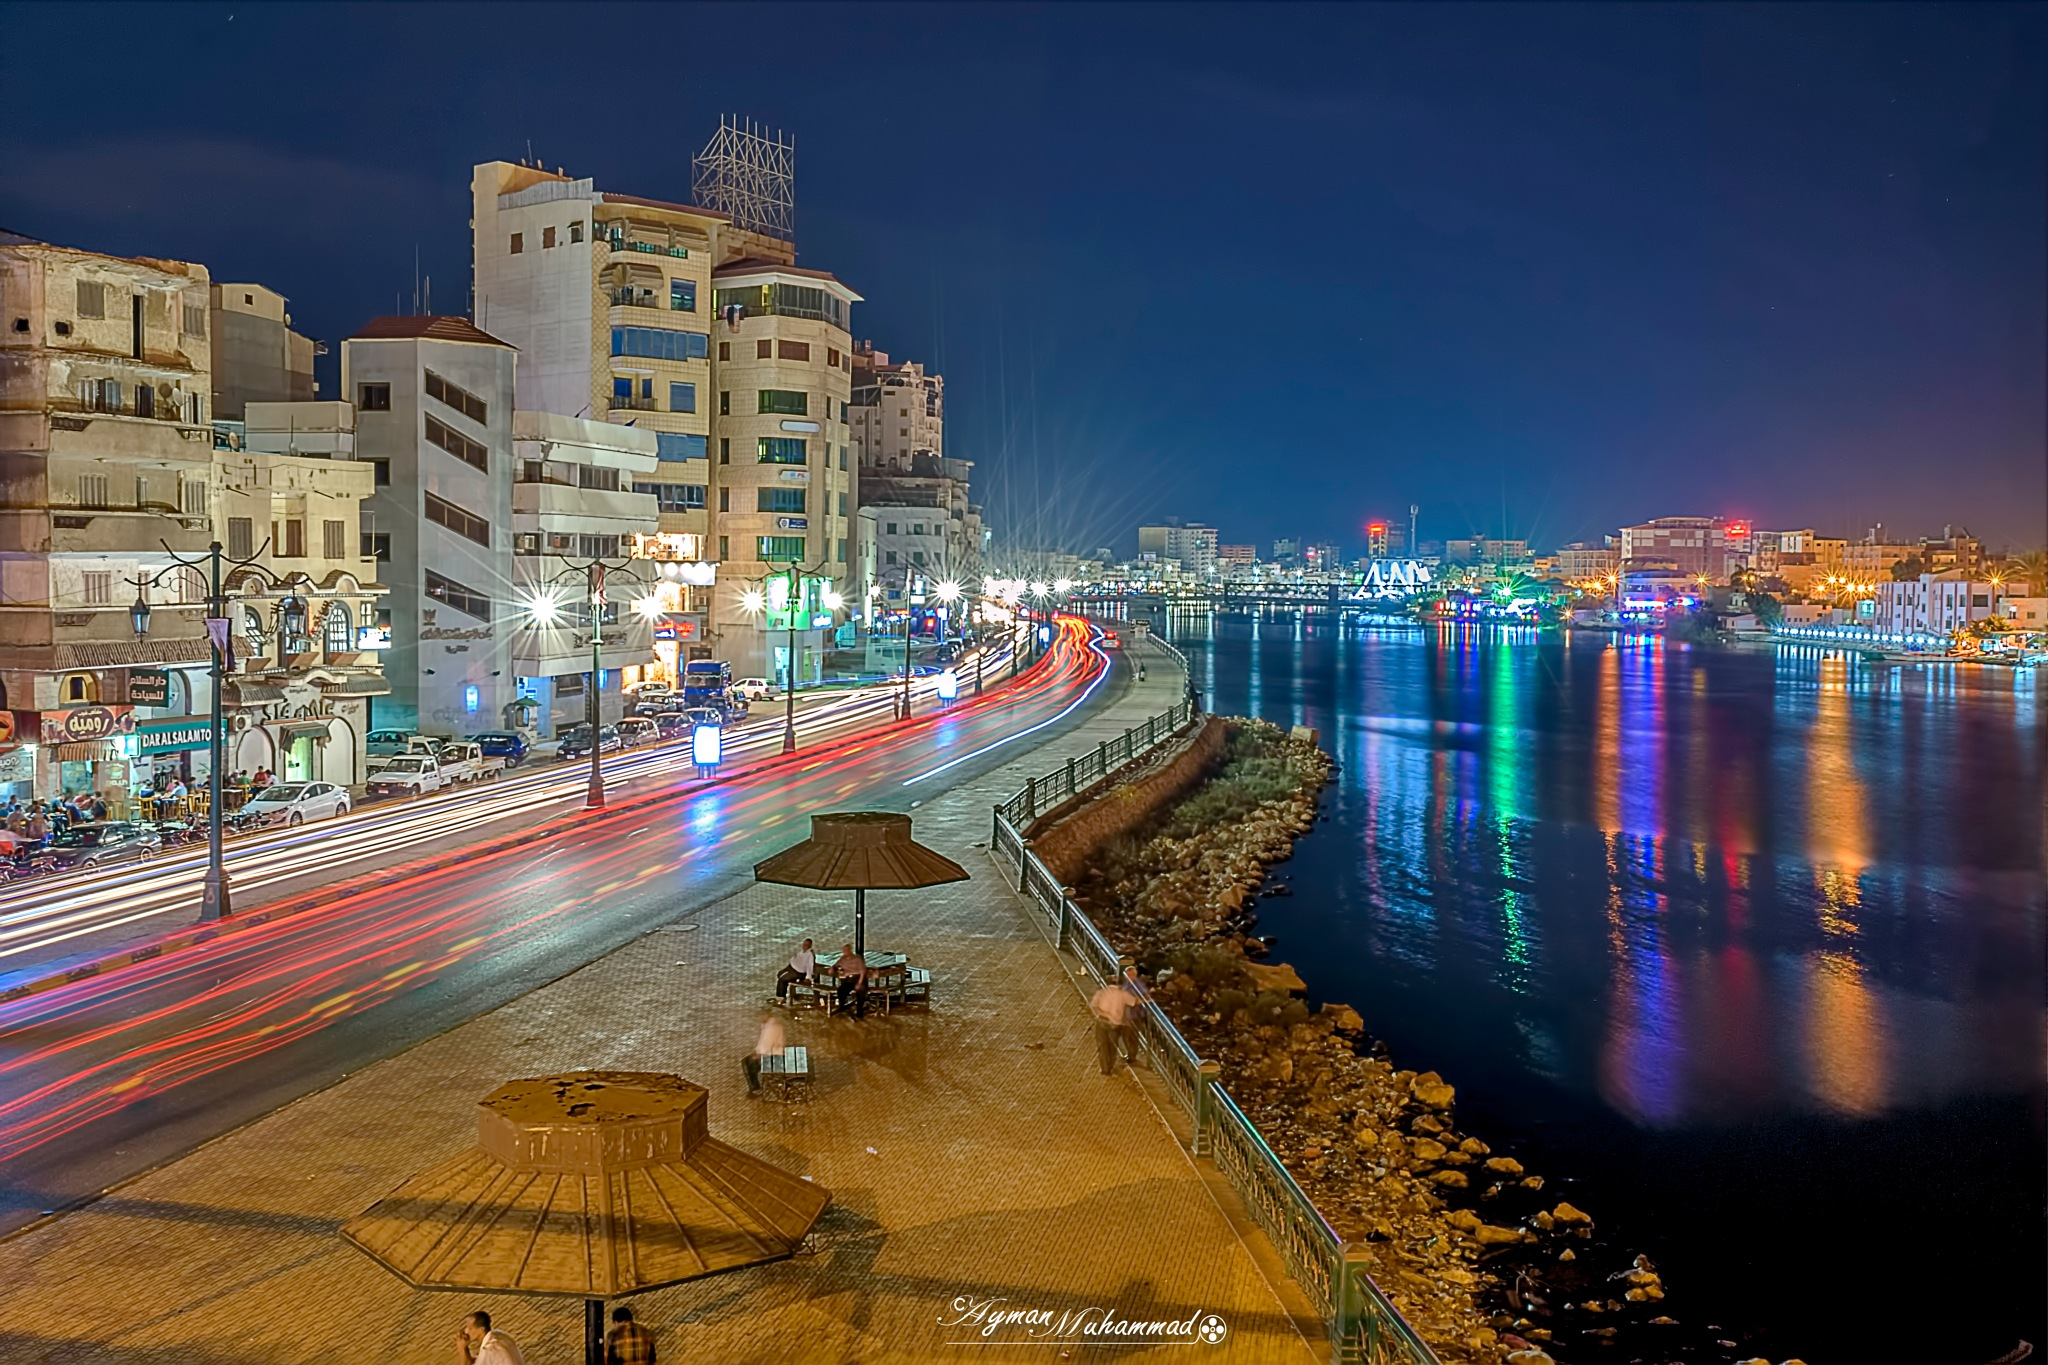 Streets of city by Nile at night +++ by AymanMuhammad